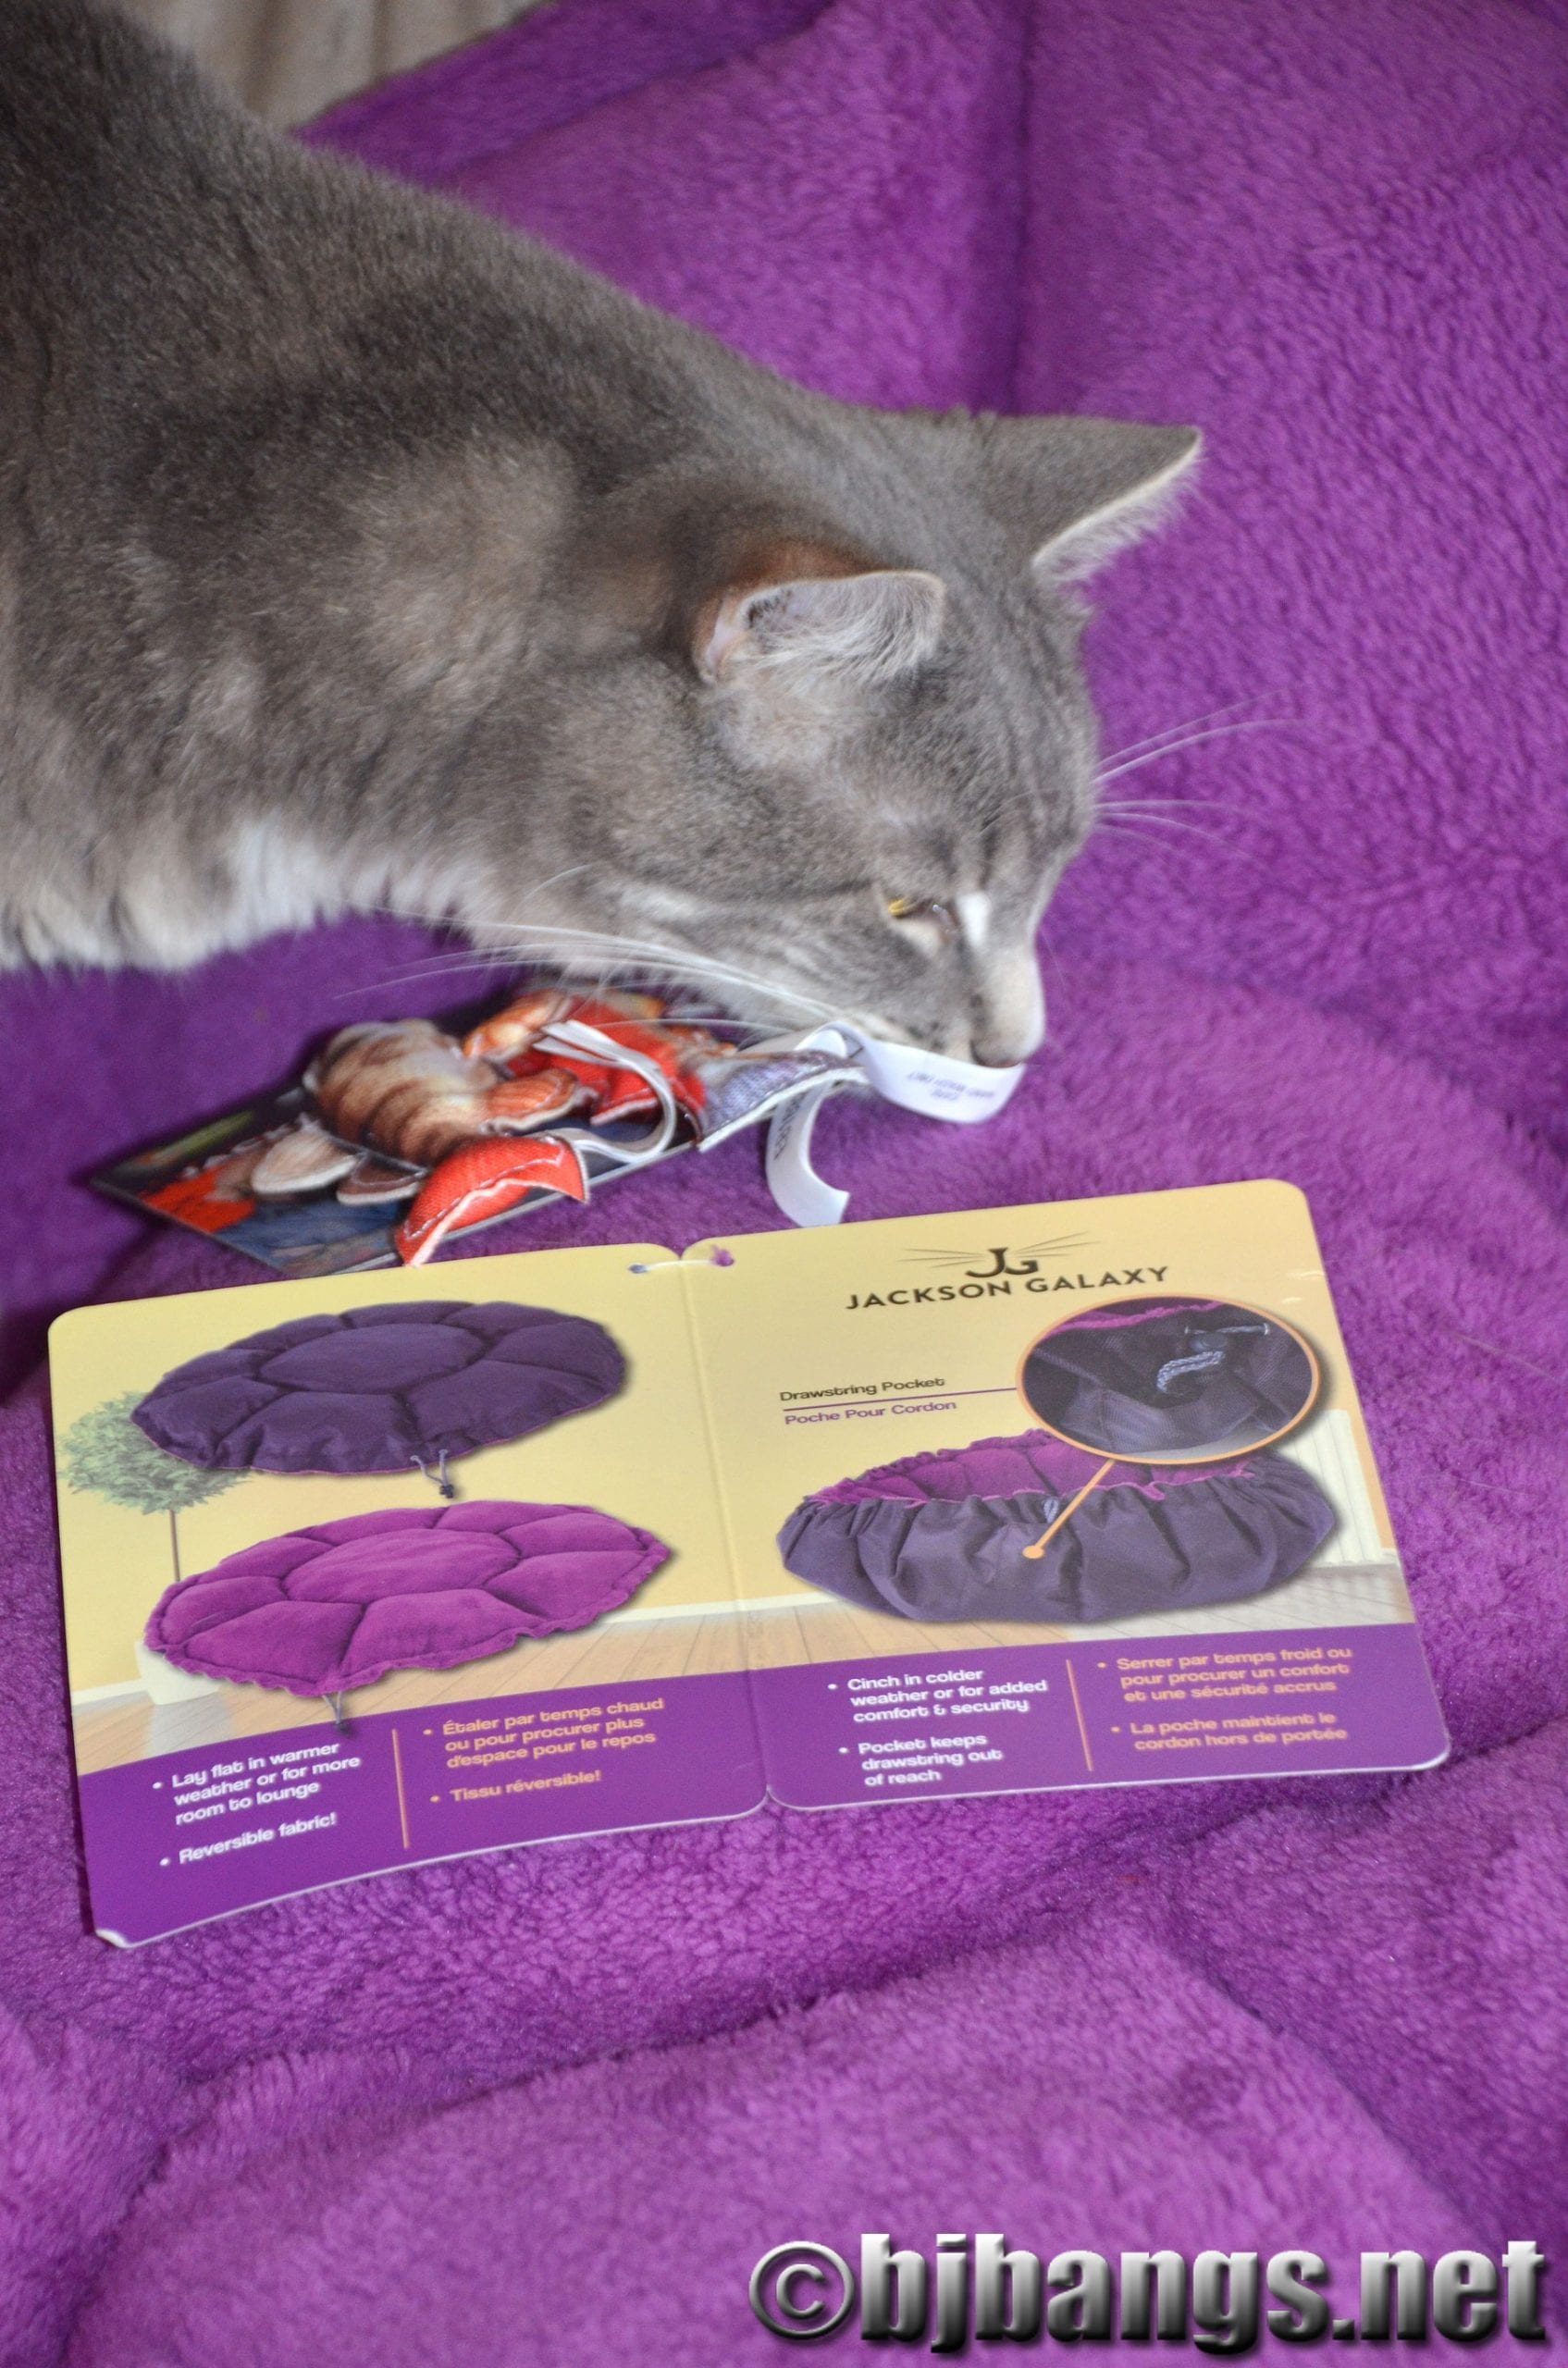 Jackson galaxy petm 24 paws for reflection for Jackson galaxy cat mojo